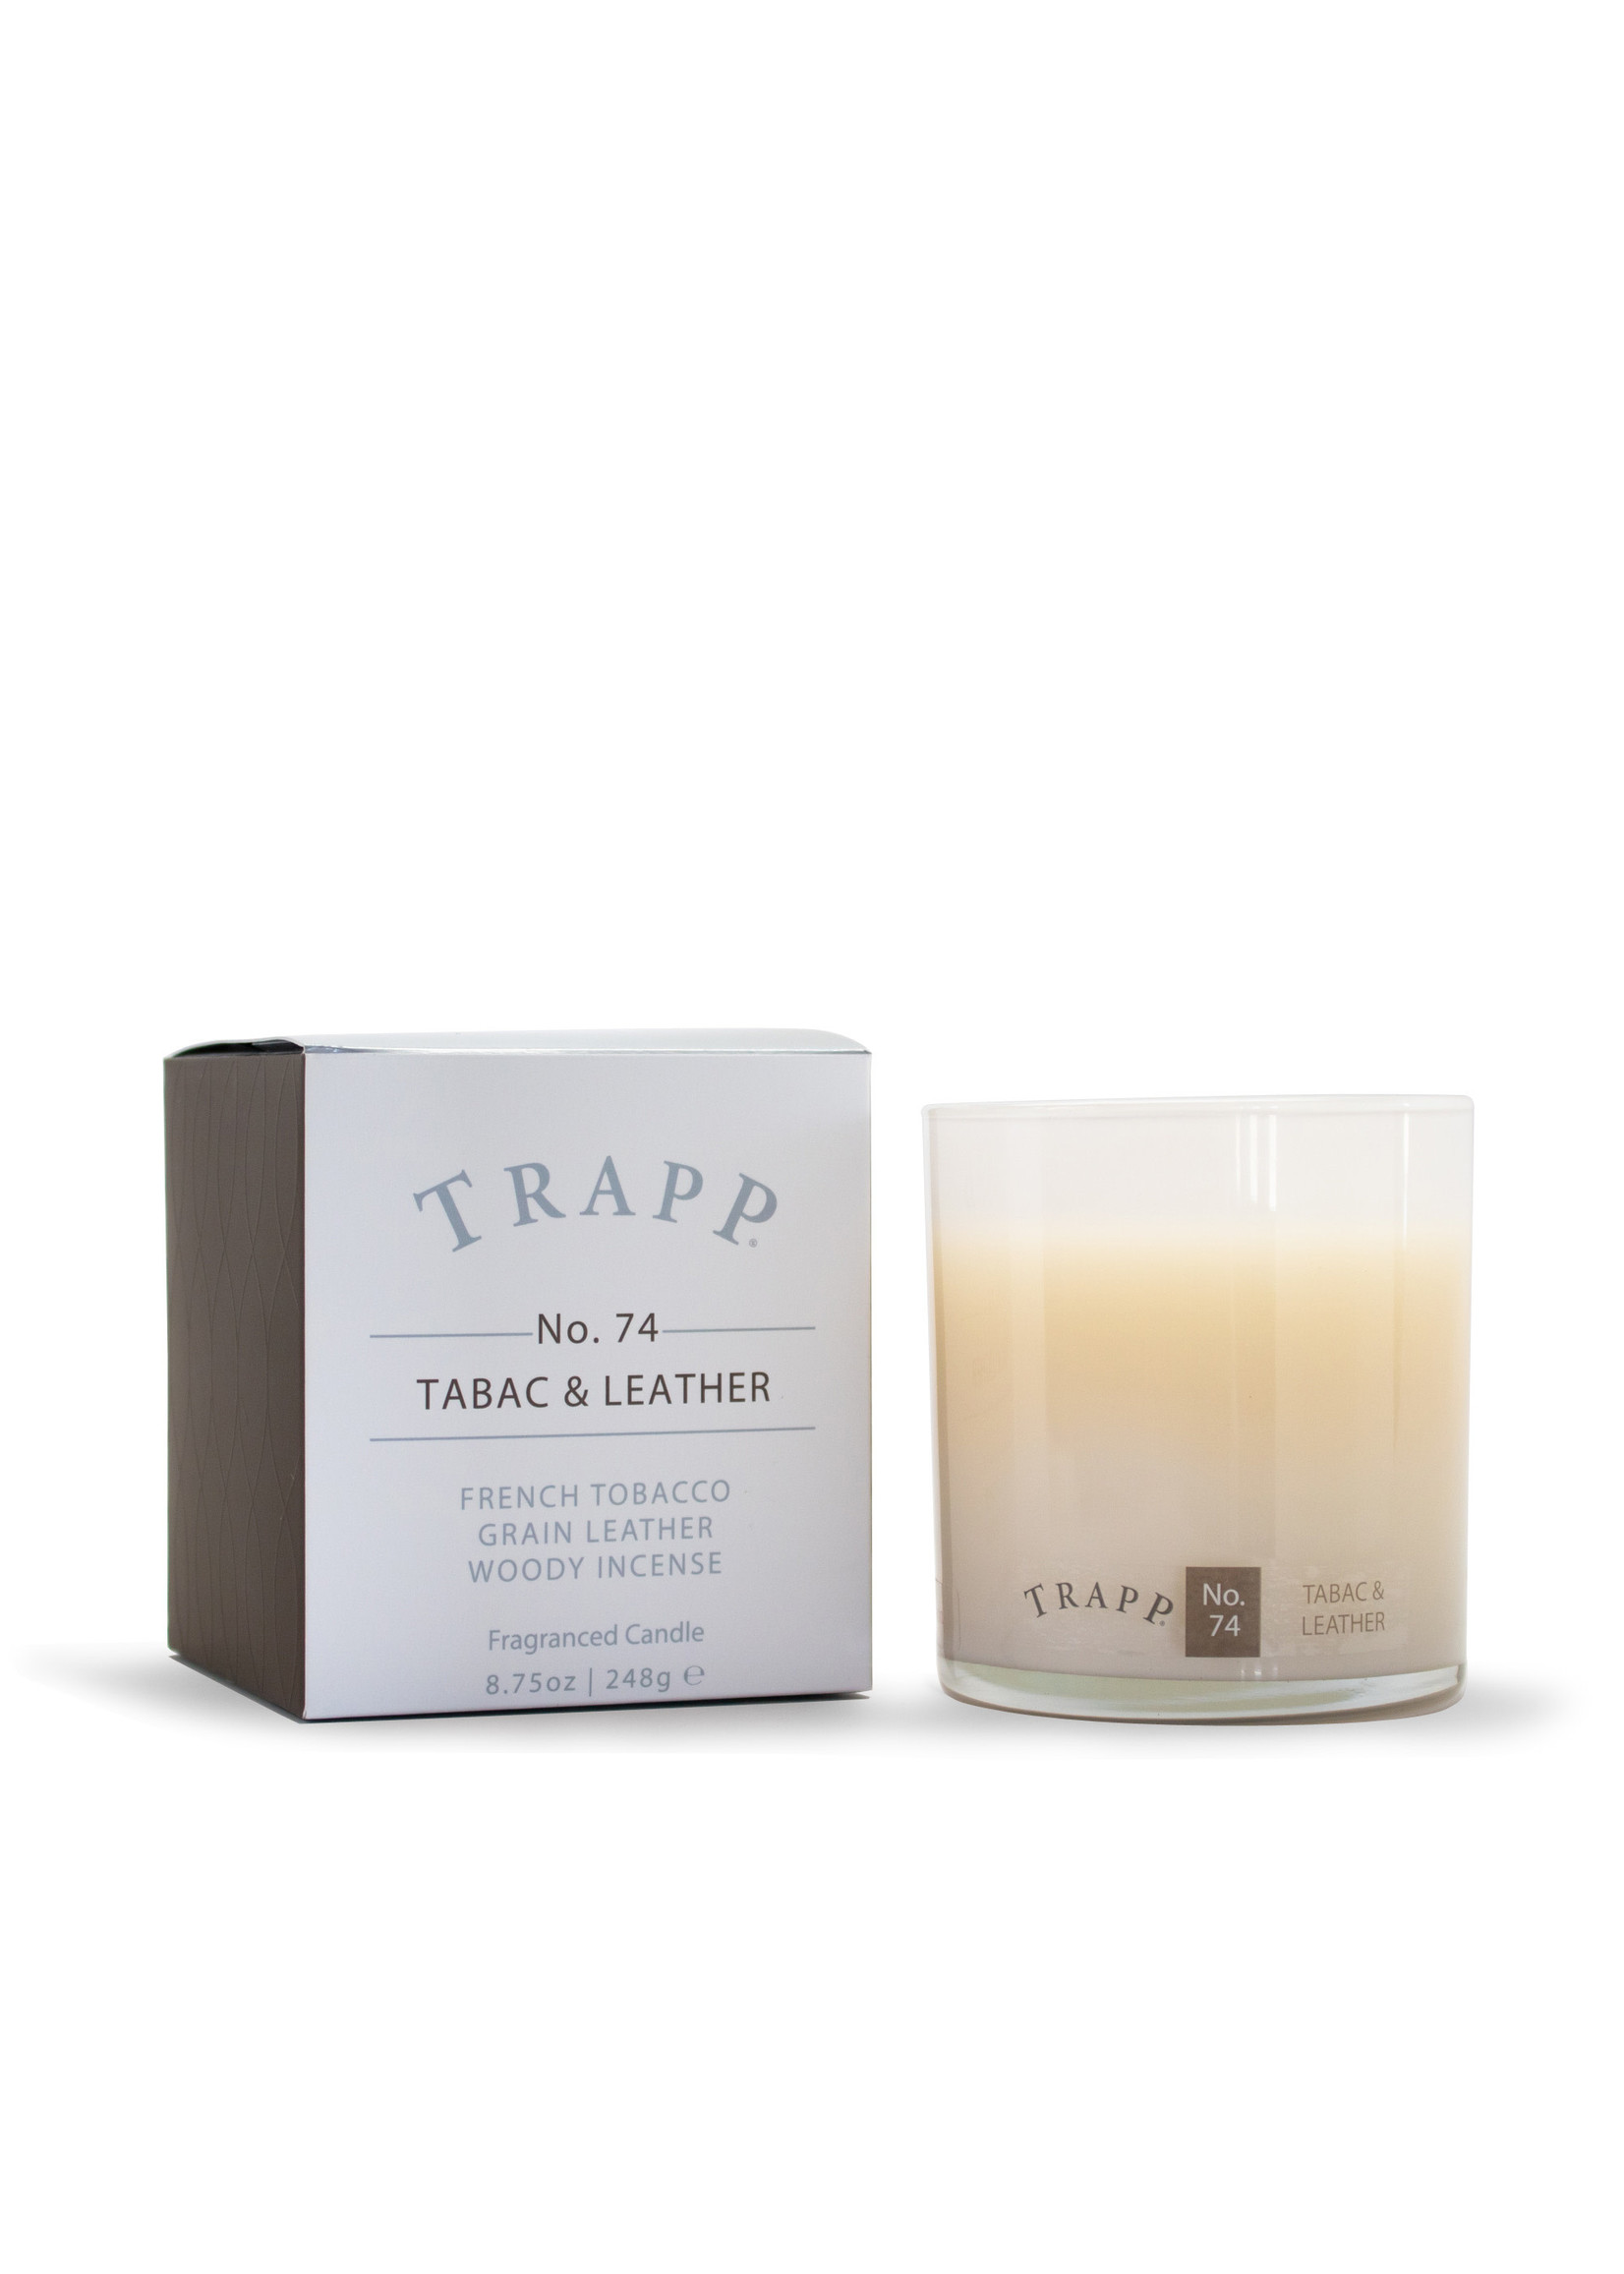 Trapp Candles Ambiance Collection - No. 74 Tabac & Leather - 8.75oz. Poured Candle